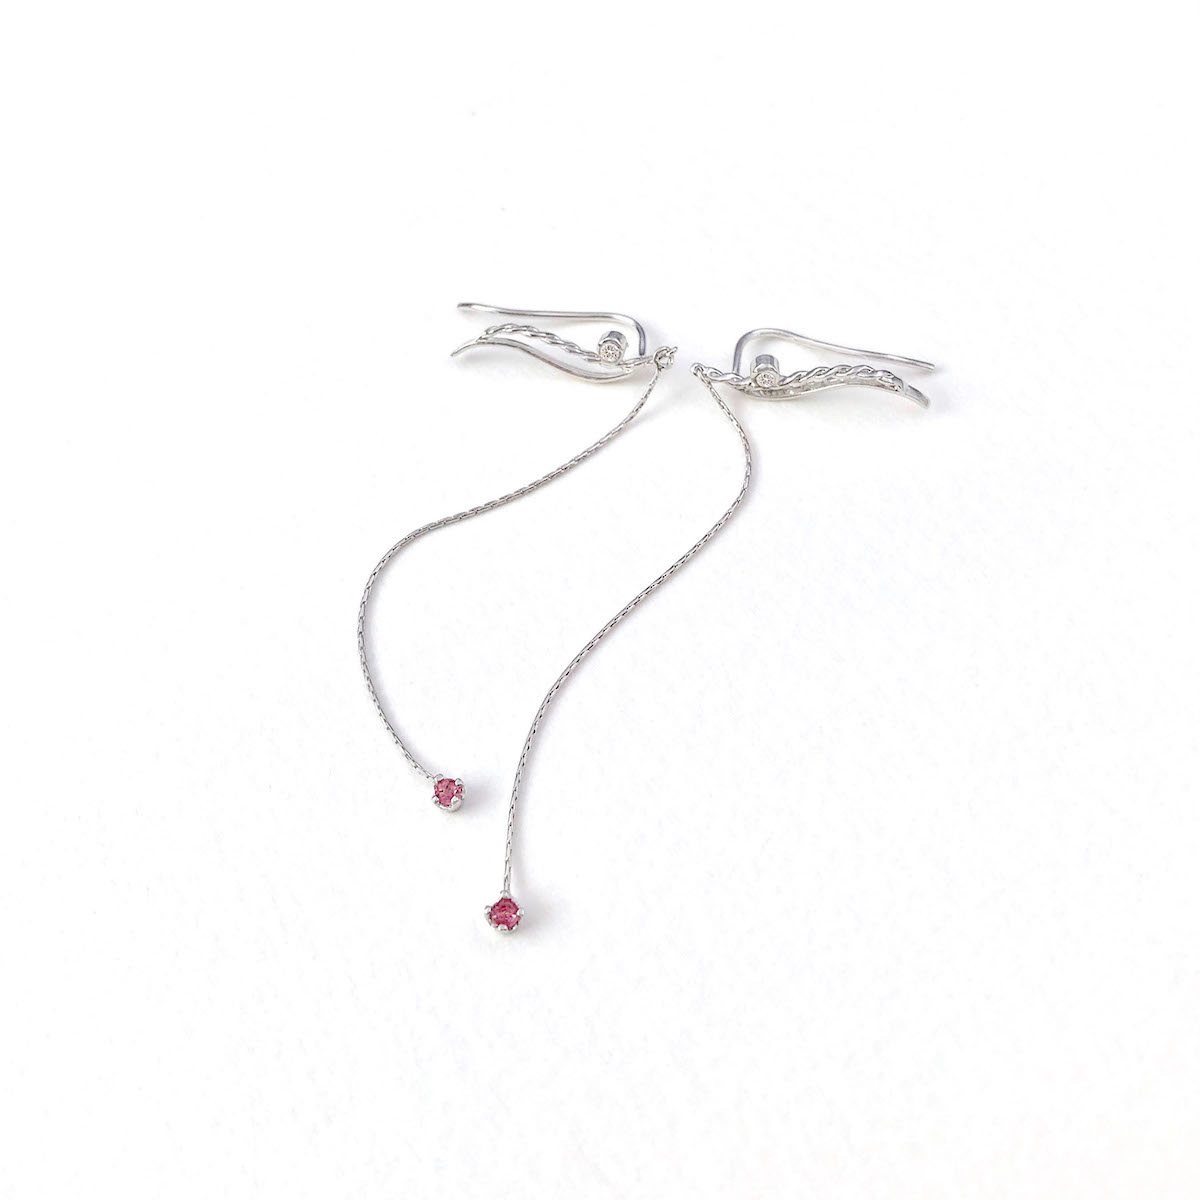 diamond-red-spinel-accented-twist-wave-climber-dangle-earrings-18k-14k-jewelyrie_4990 1200